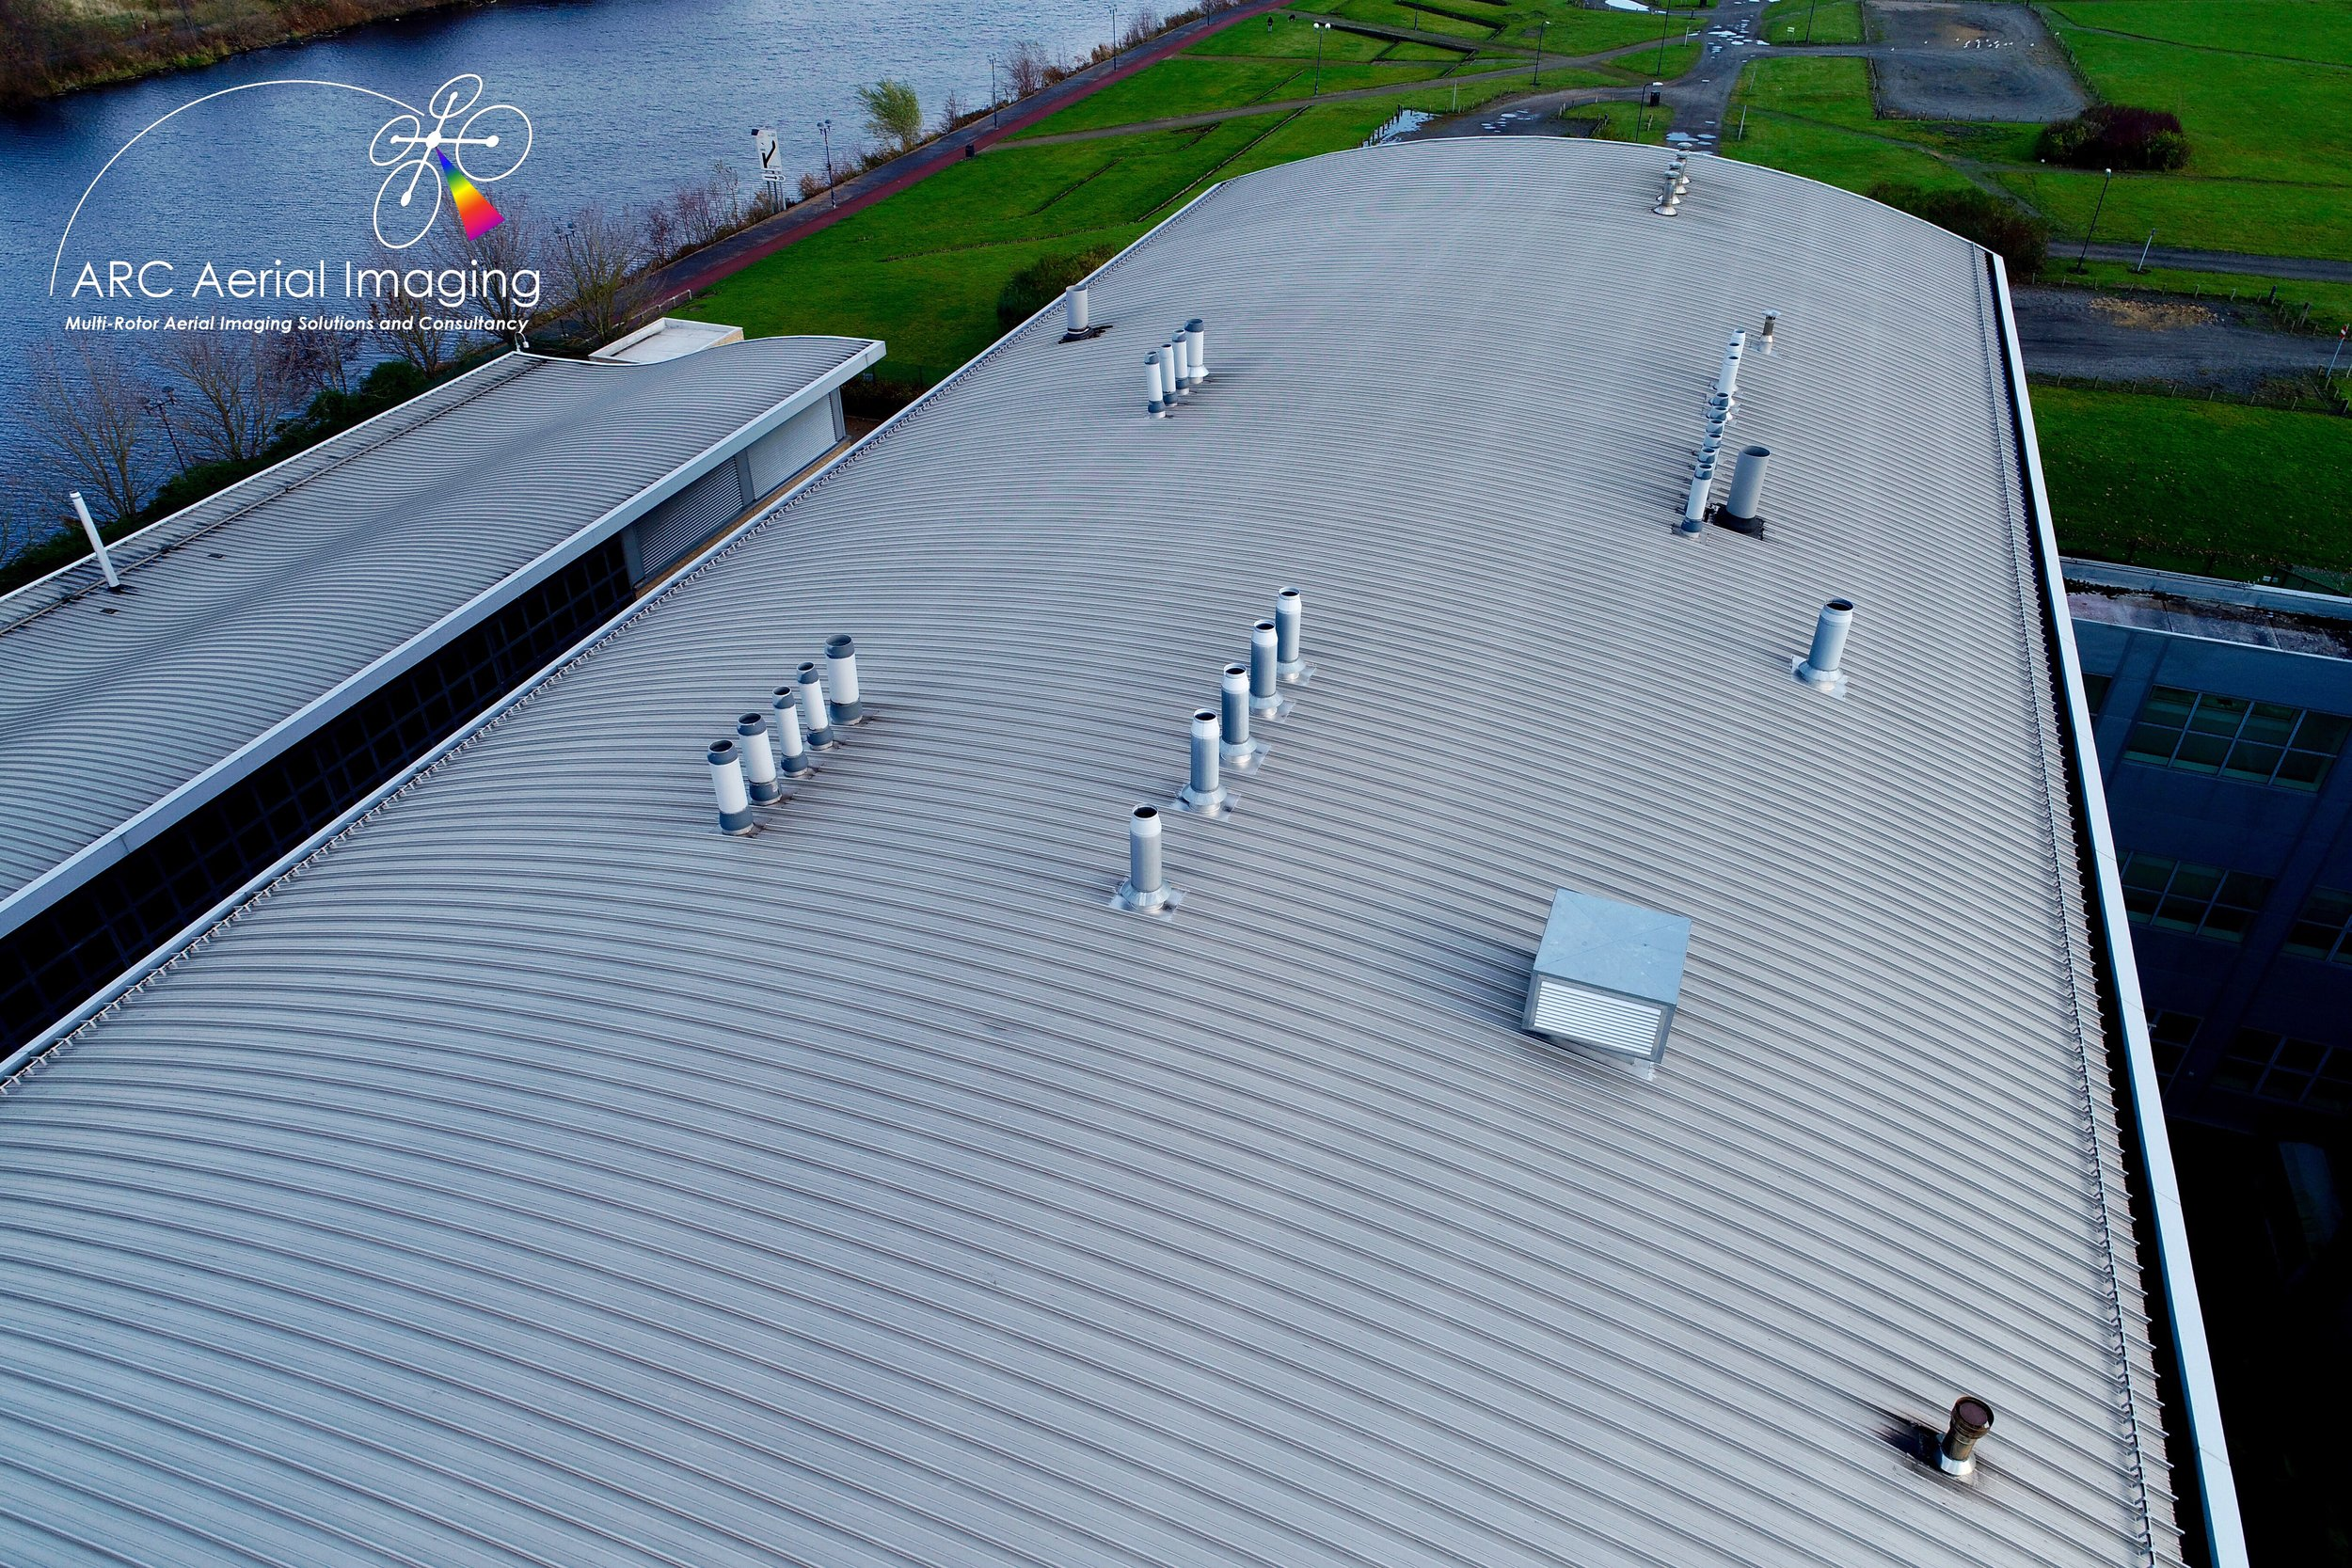 ARC Aerial Imaging Roof 2.jpg